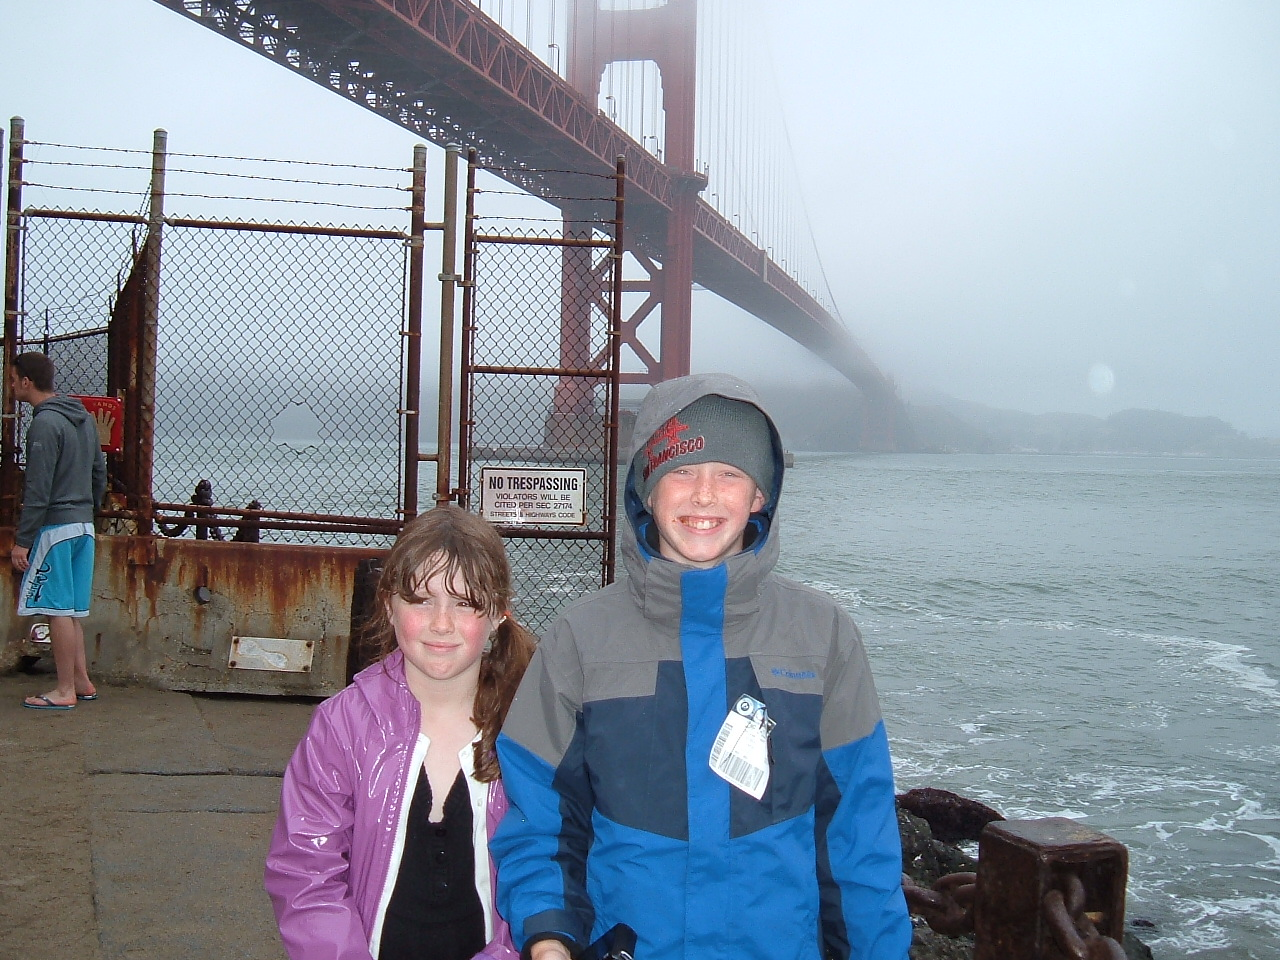 Golden Gate Bridge during a rainy June. Such sincerity in those smiles...